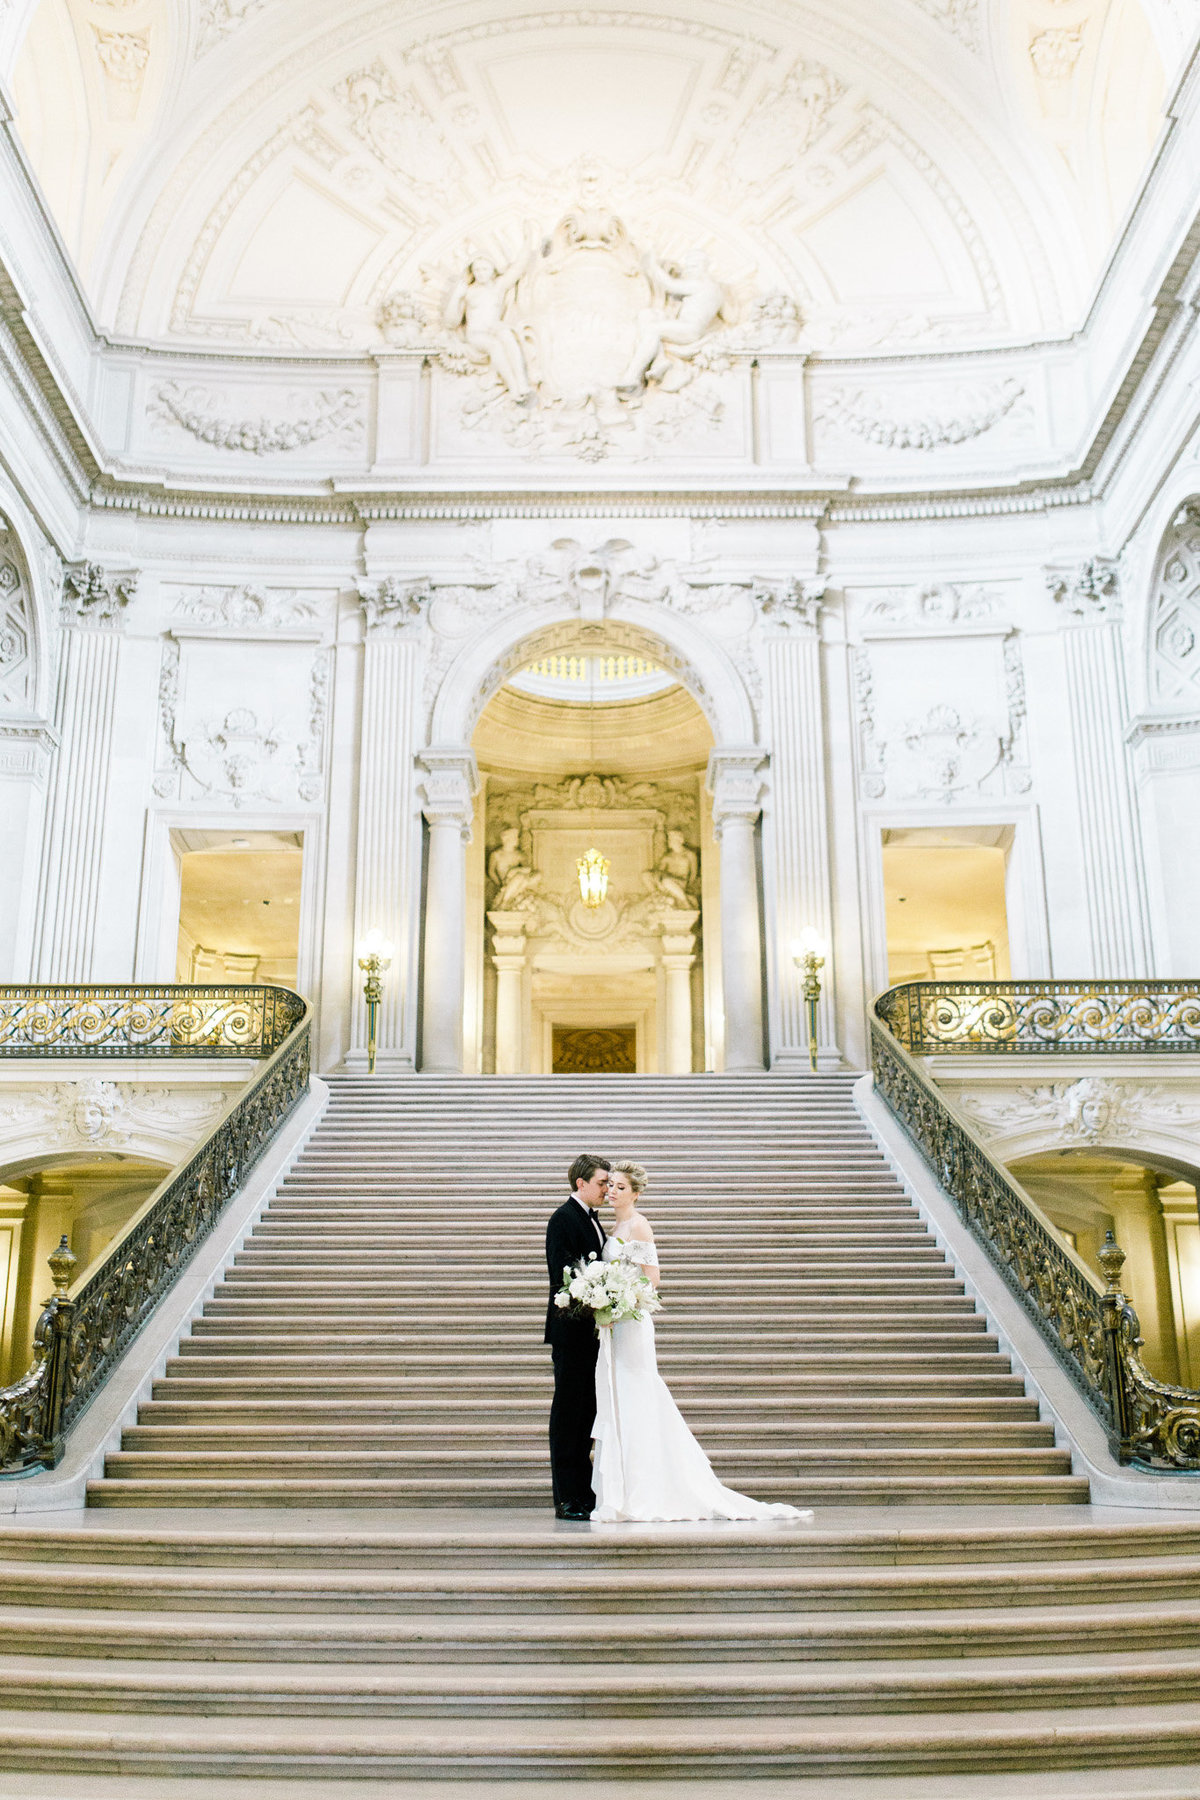 SanFranciscoCityHallWeddingPhotographer_SanFranciscoCityHallWedding_2019-Andrew_and_Ada_Photography-555